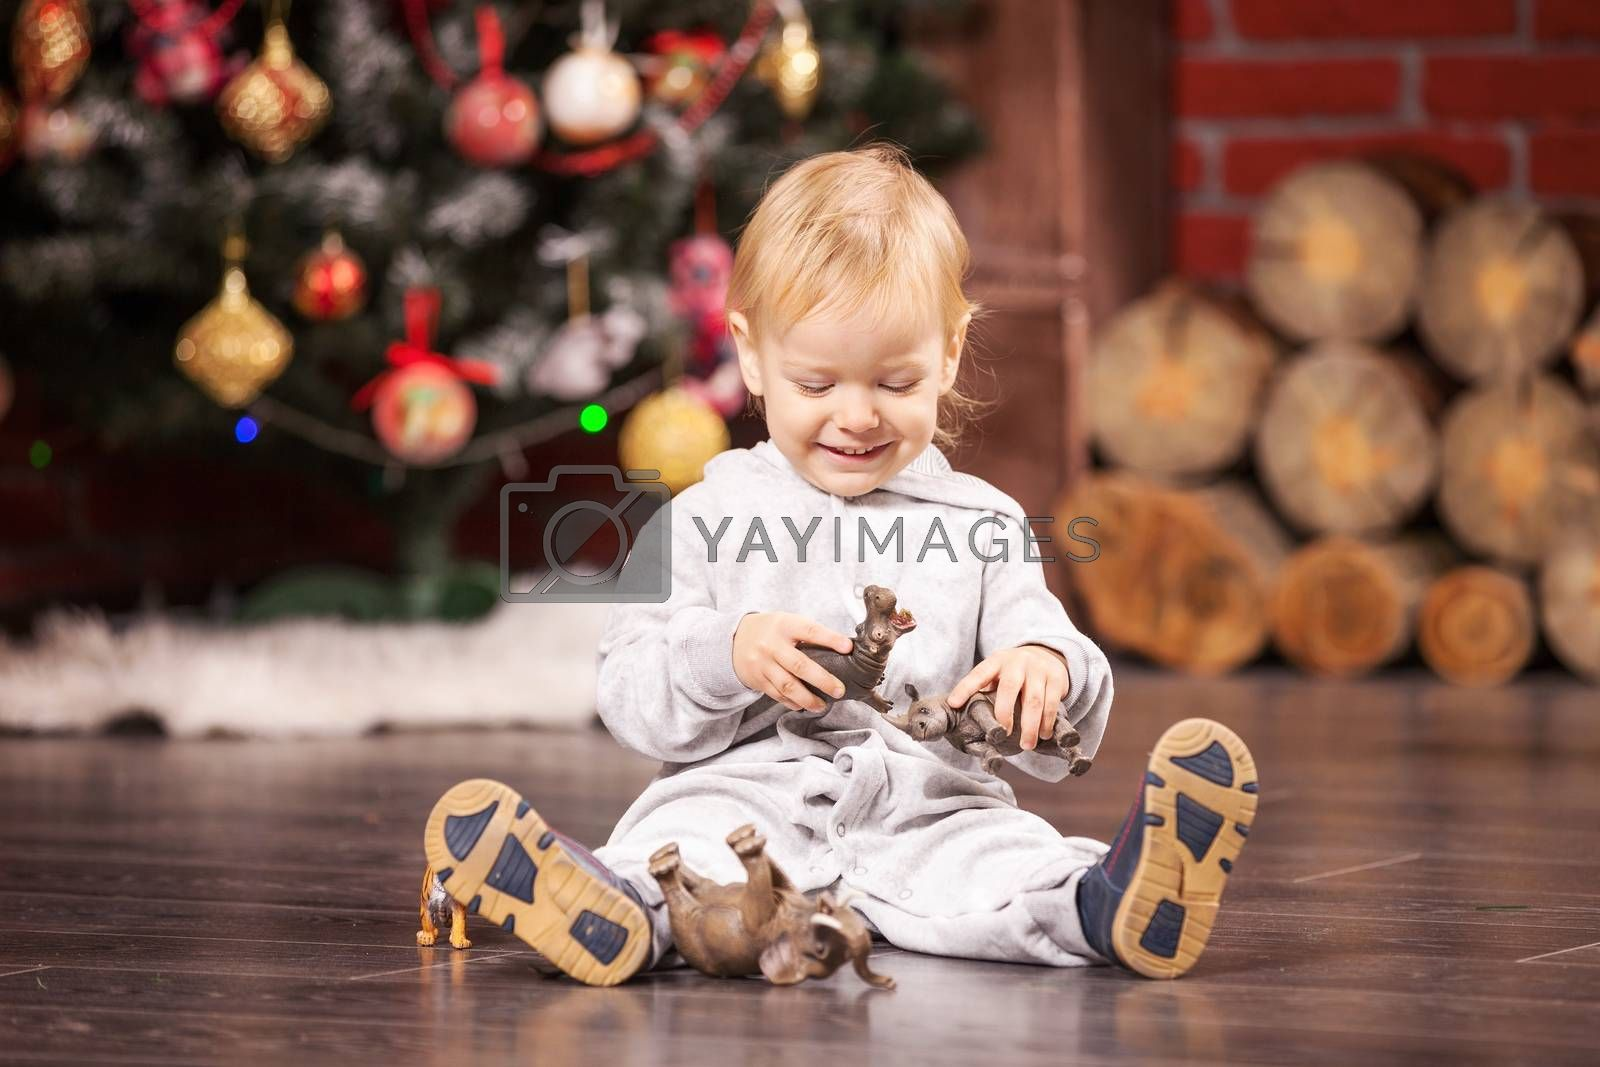 Cheerful little boy playing with his toy animals by Christmas tree